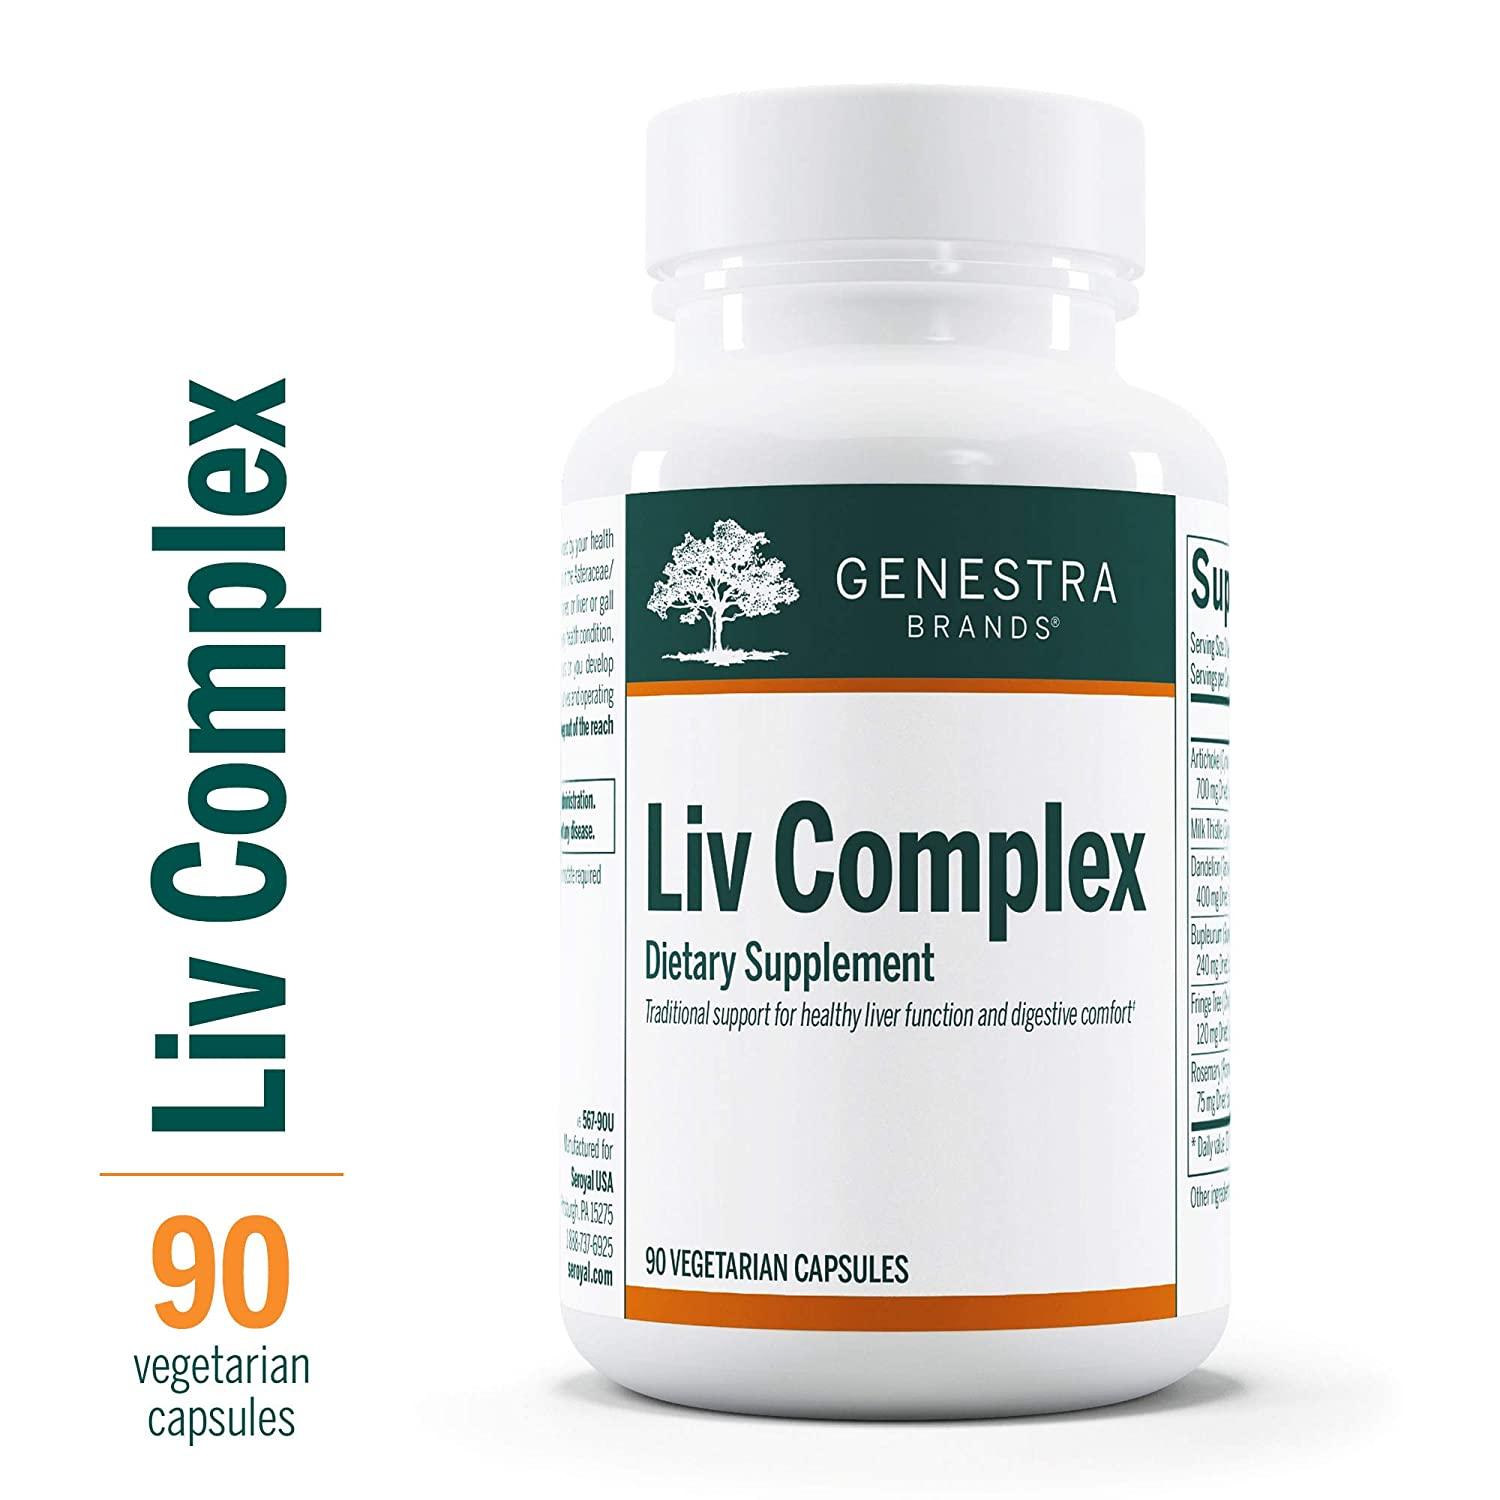 Genestra Brands – Liv Complex – Liver Support Supplement* – 90 Capsules